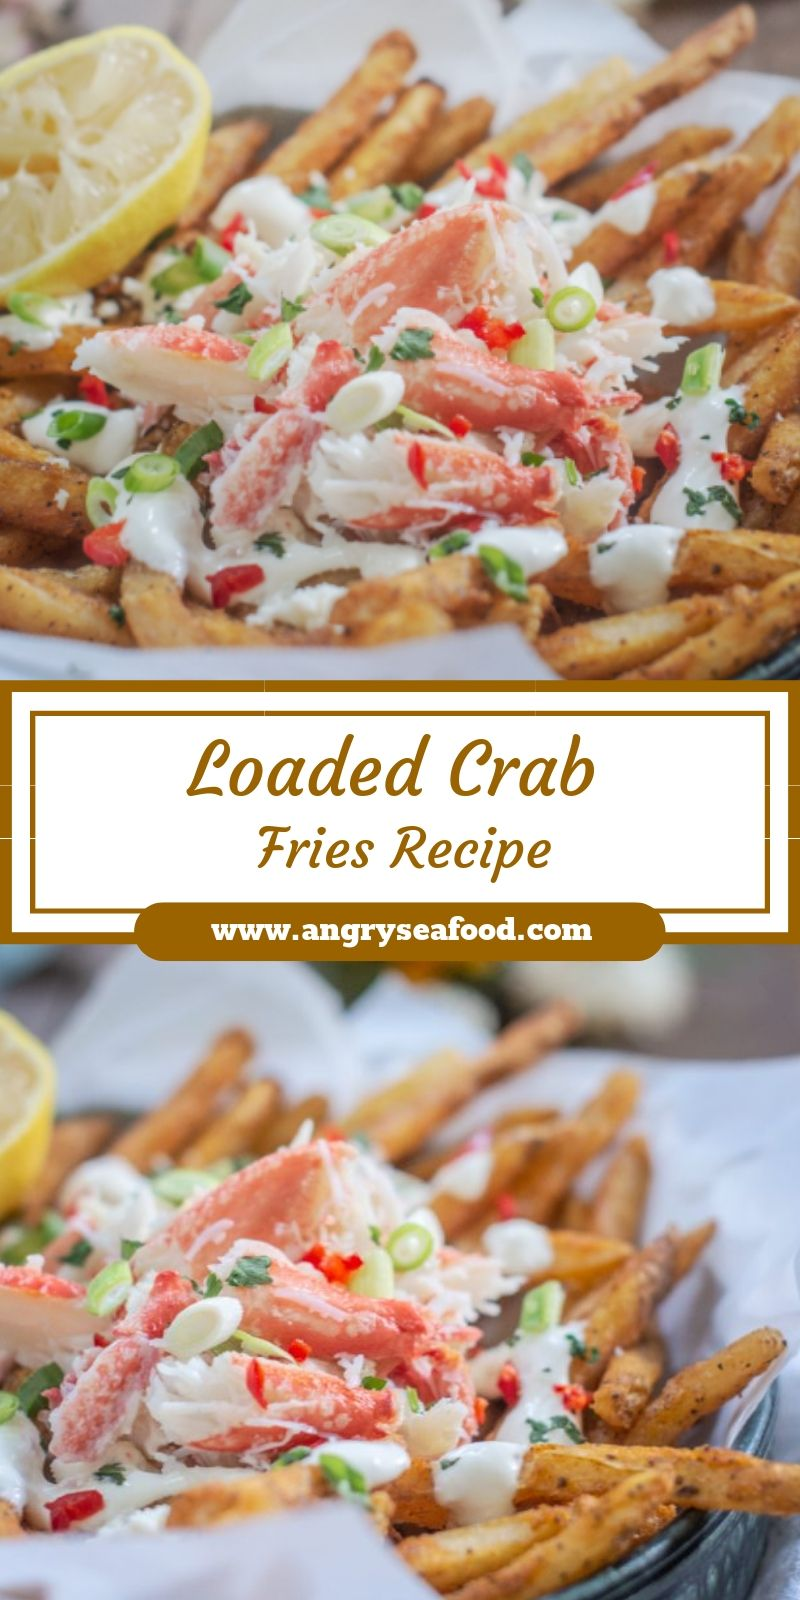 Loaded Crab Fries Recipe